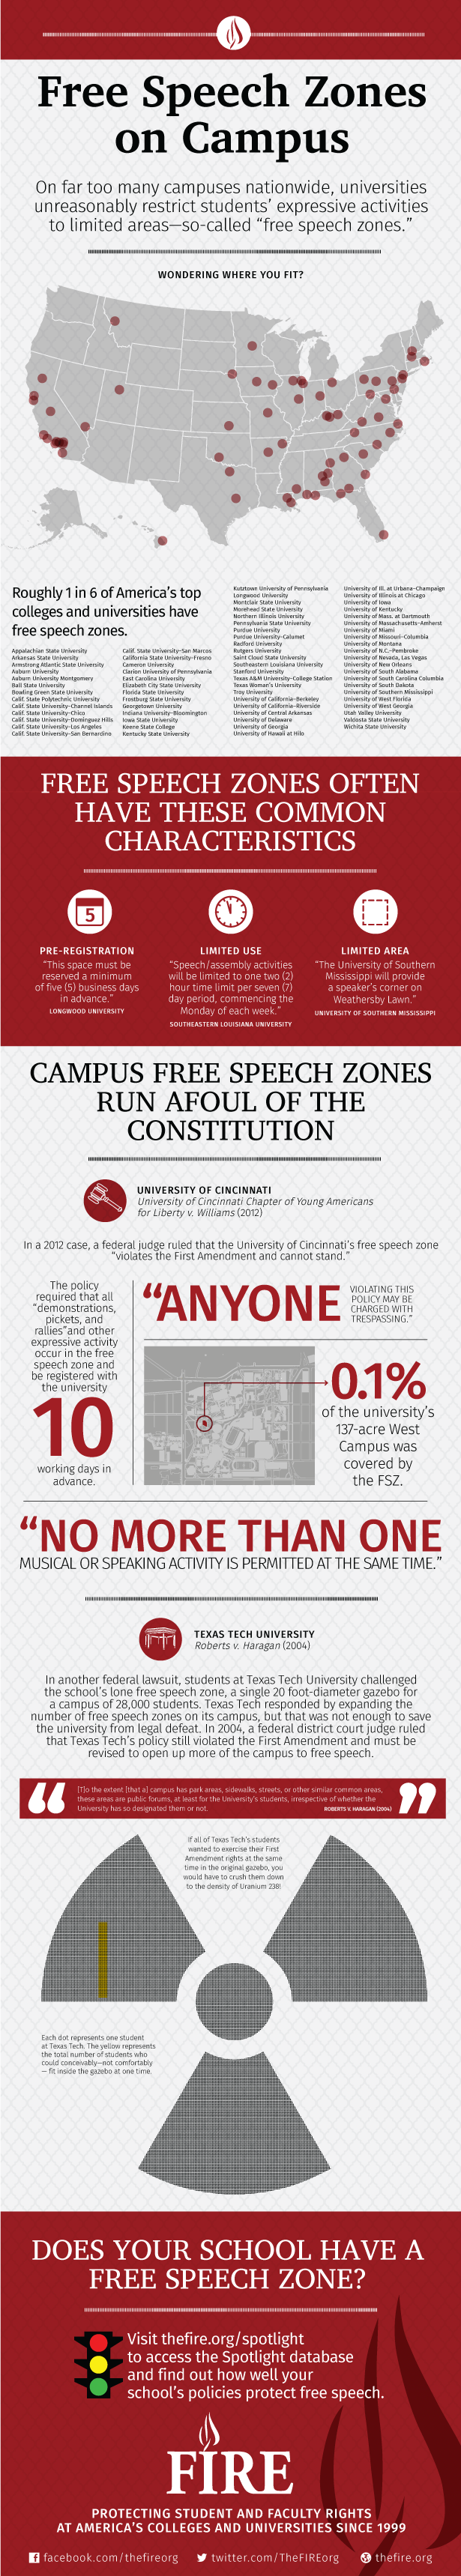 36 entertaining informative speech topics com speech zones on college campuses